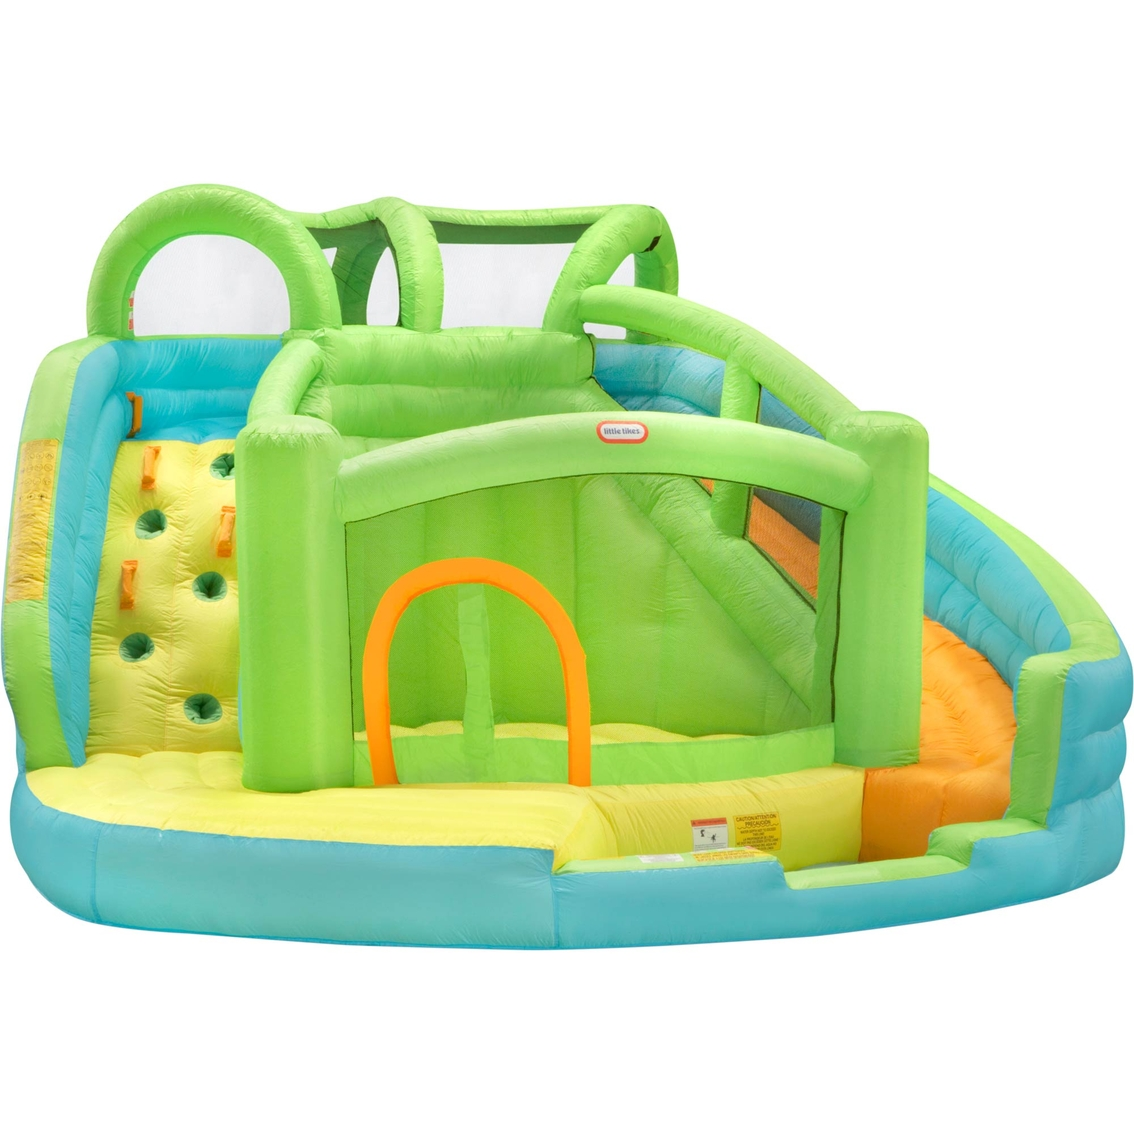 3c5248bc3 Little Tikes 2-in-1 Wet  n Dry Bouncer